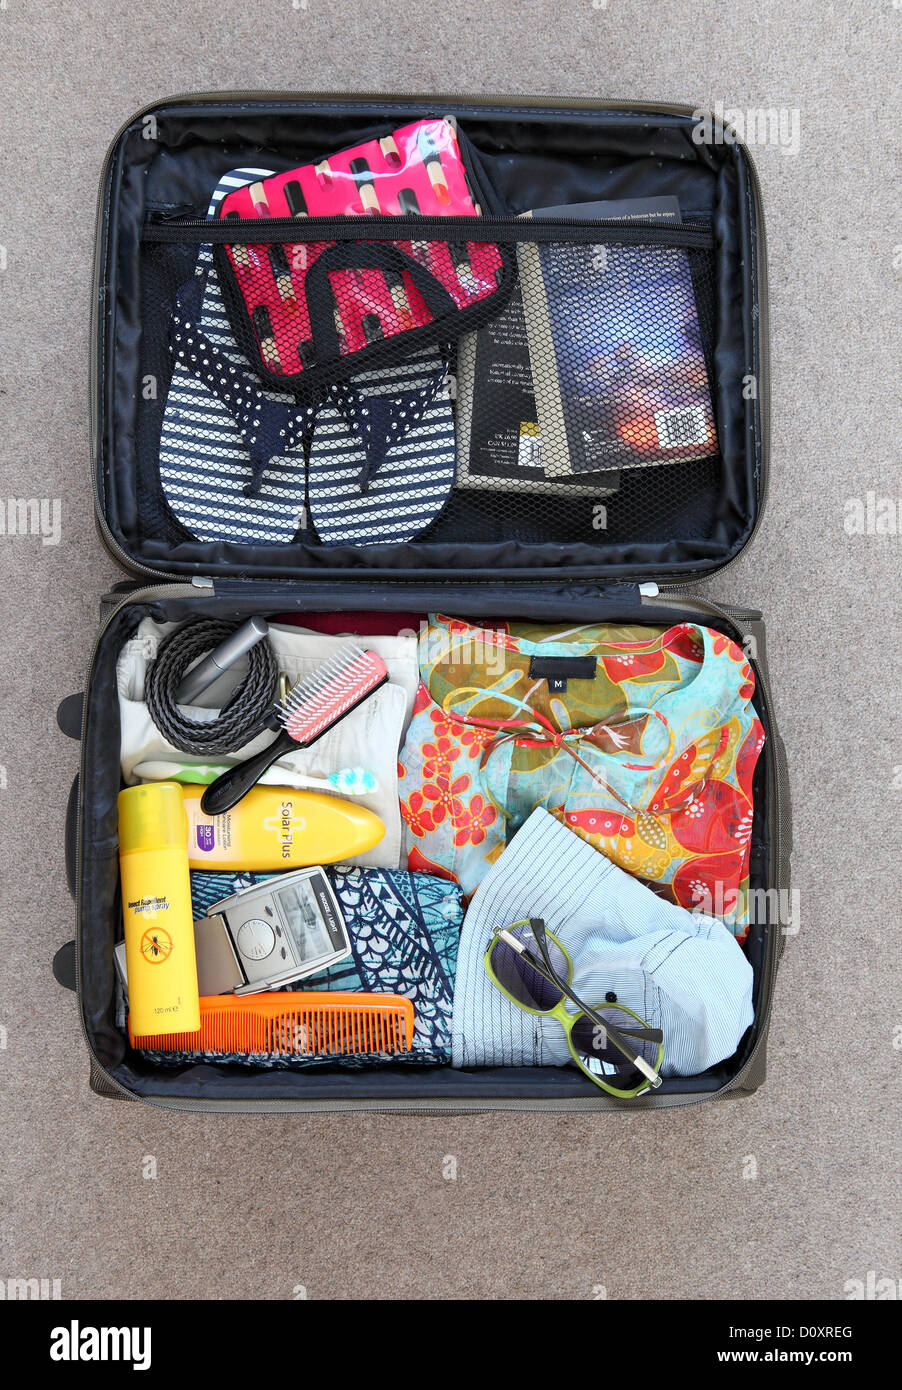 Suitcase packed for vacation - Stock Image